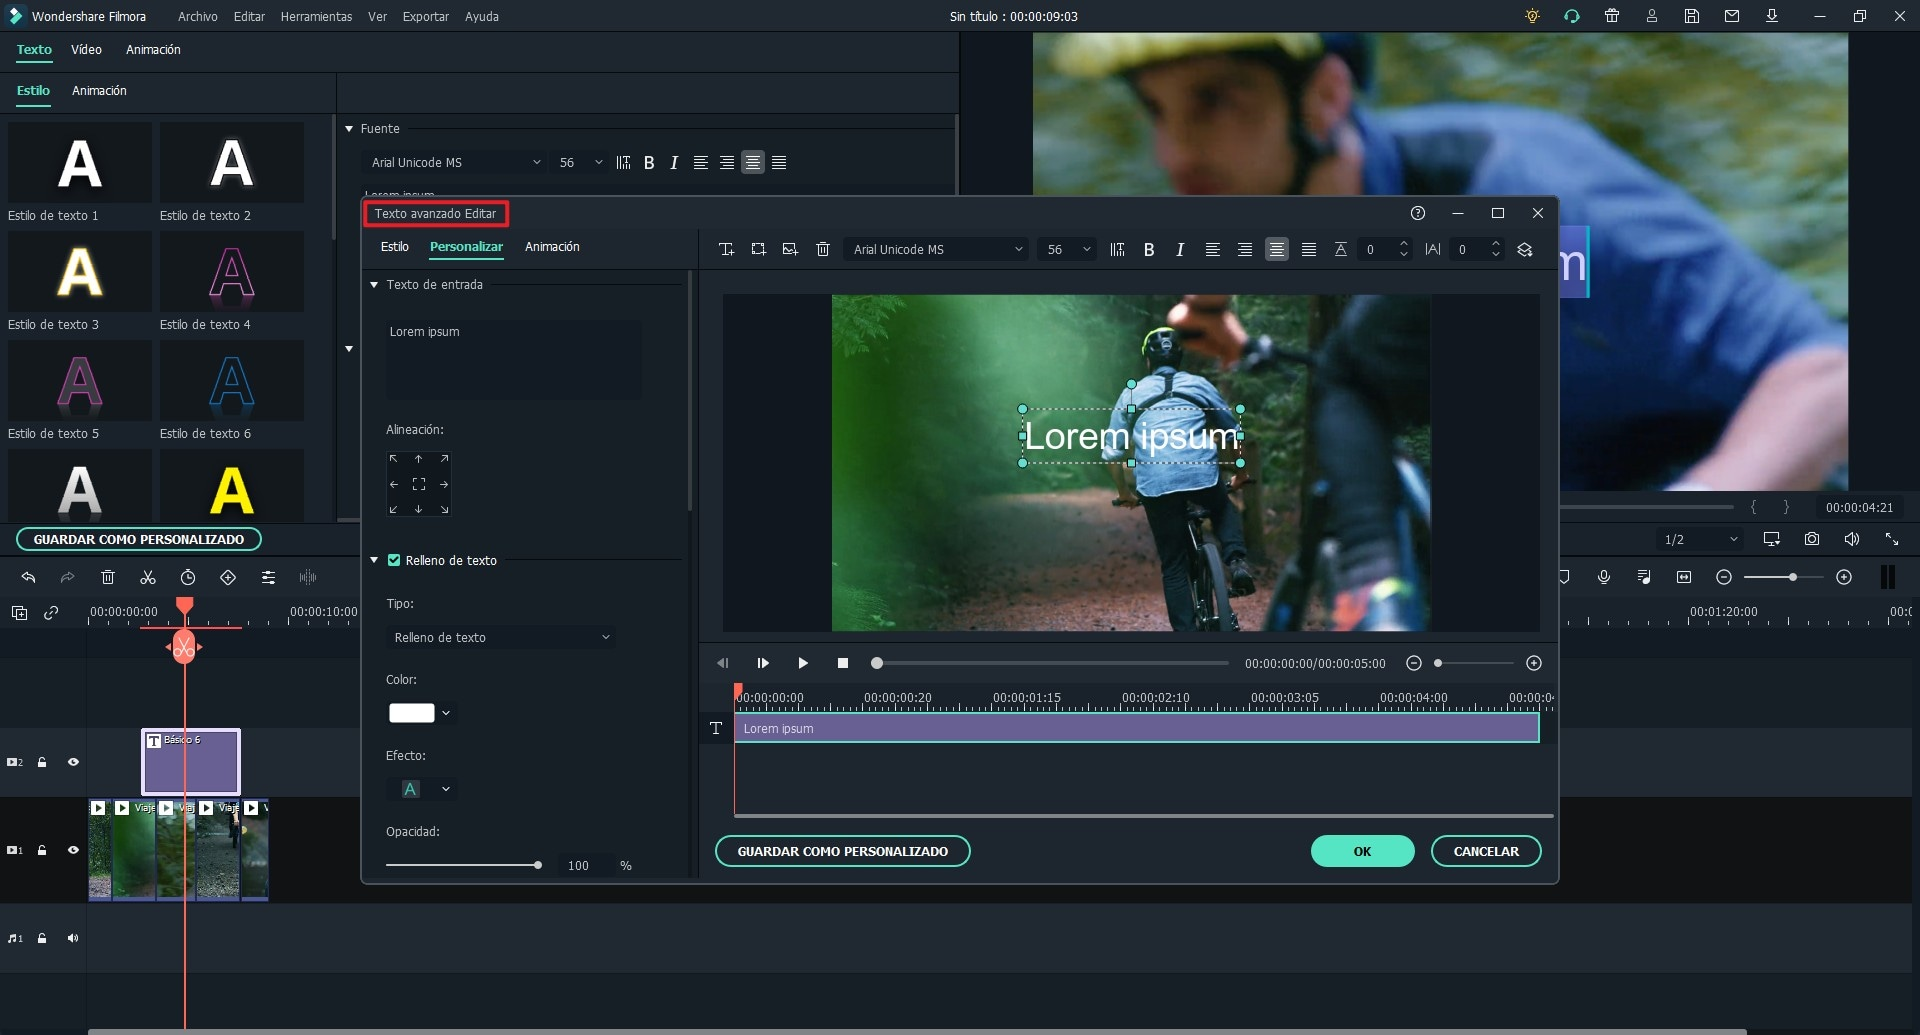 Adobe Video Editor: ¿Qué software de Adobe es mejor para editar un video?